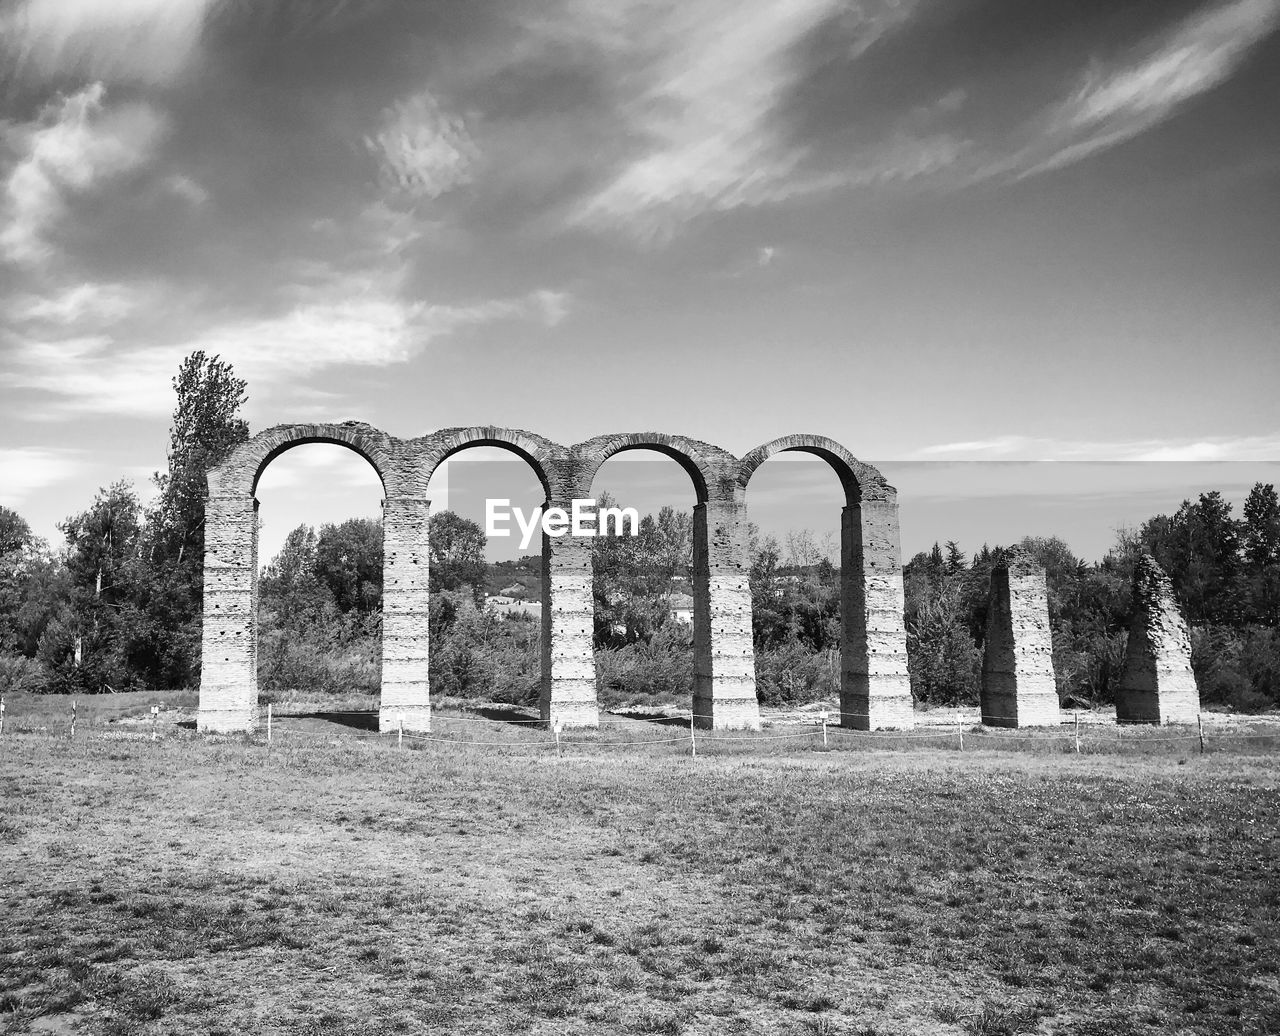 sky, cloud - sky, plant, grass, field, nature, tree, no people, day, architecture, built structure, land, arch, environment, landscape, history, outdoors, tranquility, the past, tranquil scene, architectural column